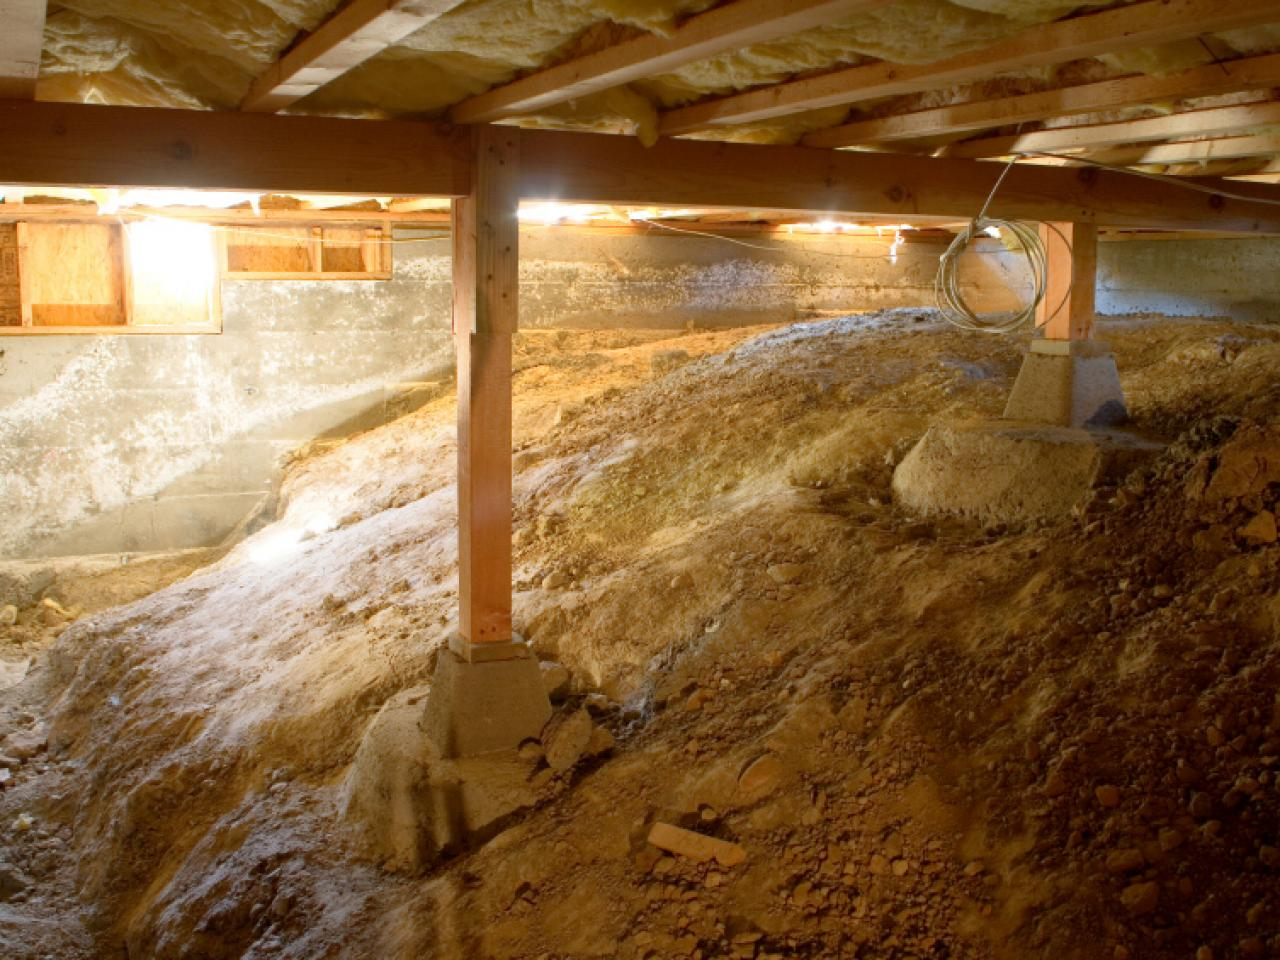 Crawl space vapor barriers and encapsulation hgtv for How to build a crawl space foundation for a house